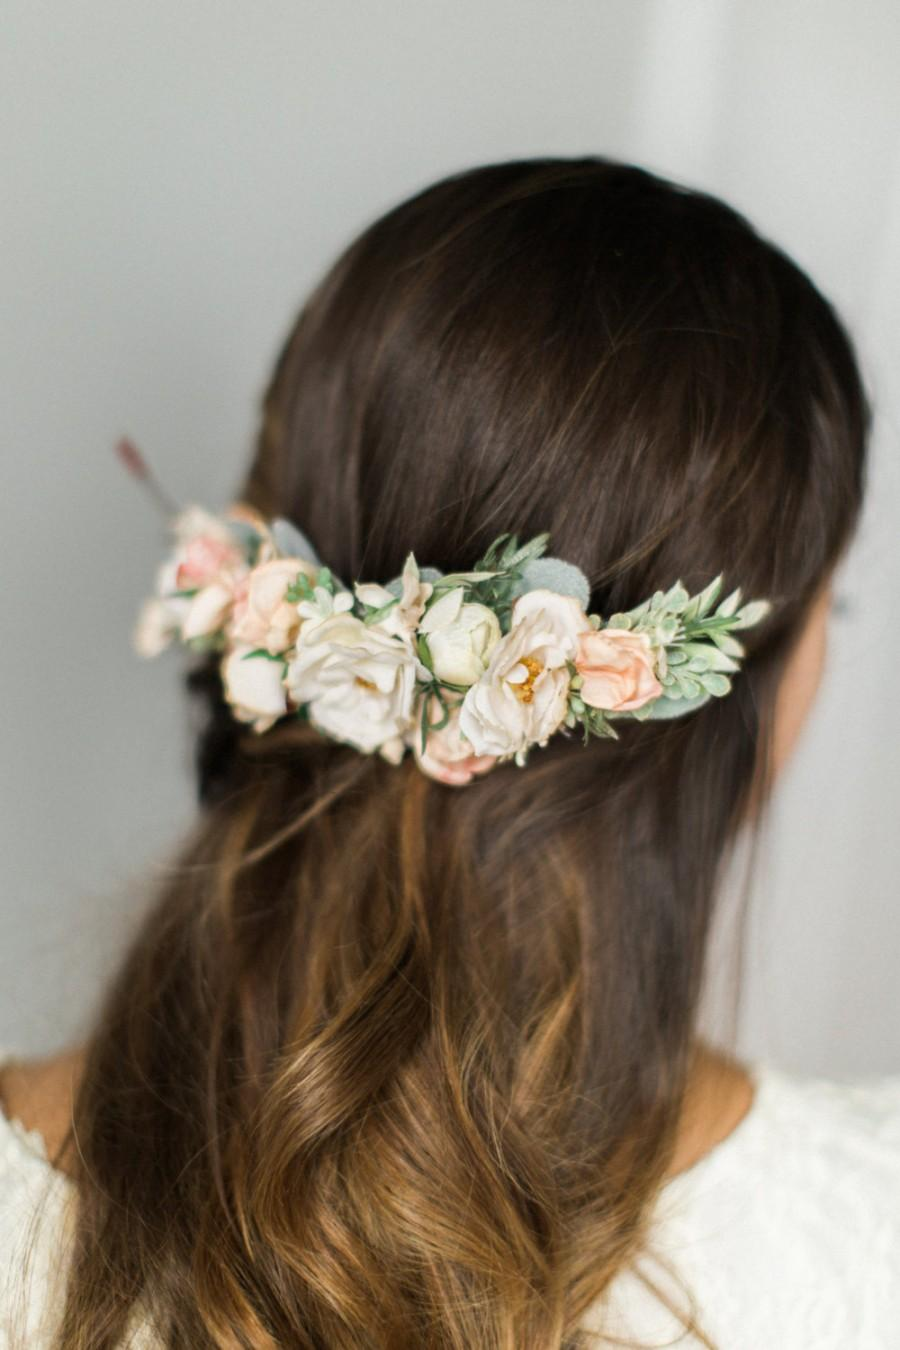 Wedding - Bridal Flower Comb- Blush bridal headpiece- Back Flower Comb- Back Headpiece- Ivory Wedding Hair- Floral Hair Comb- Flower Crown- Circlet